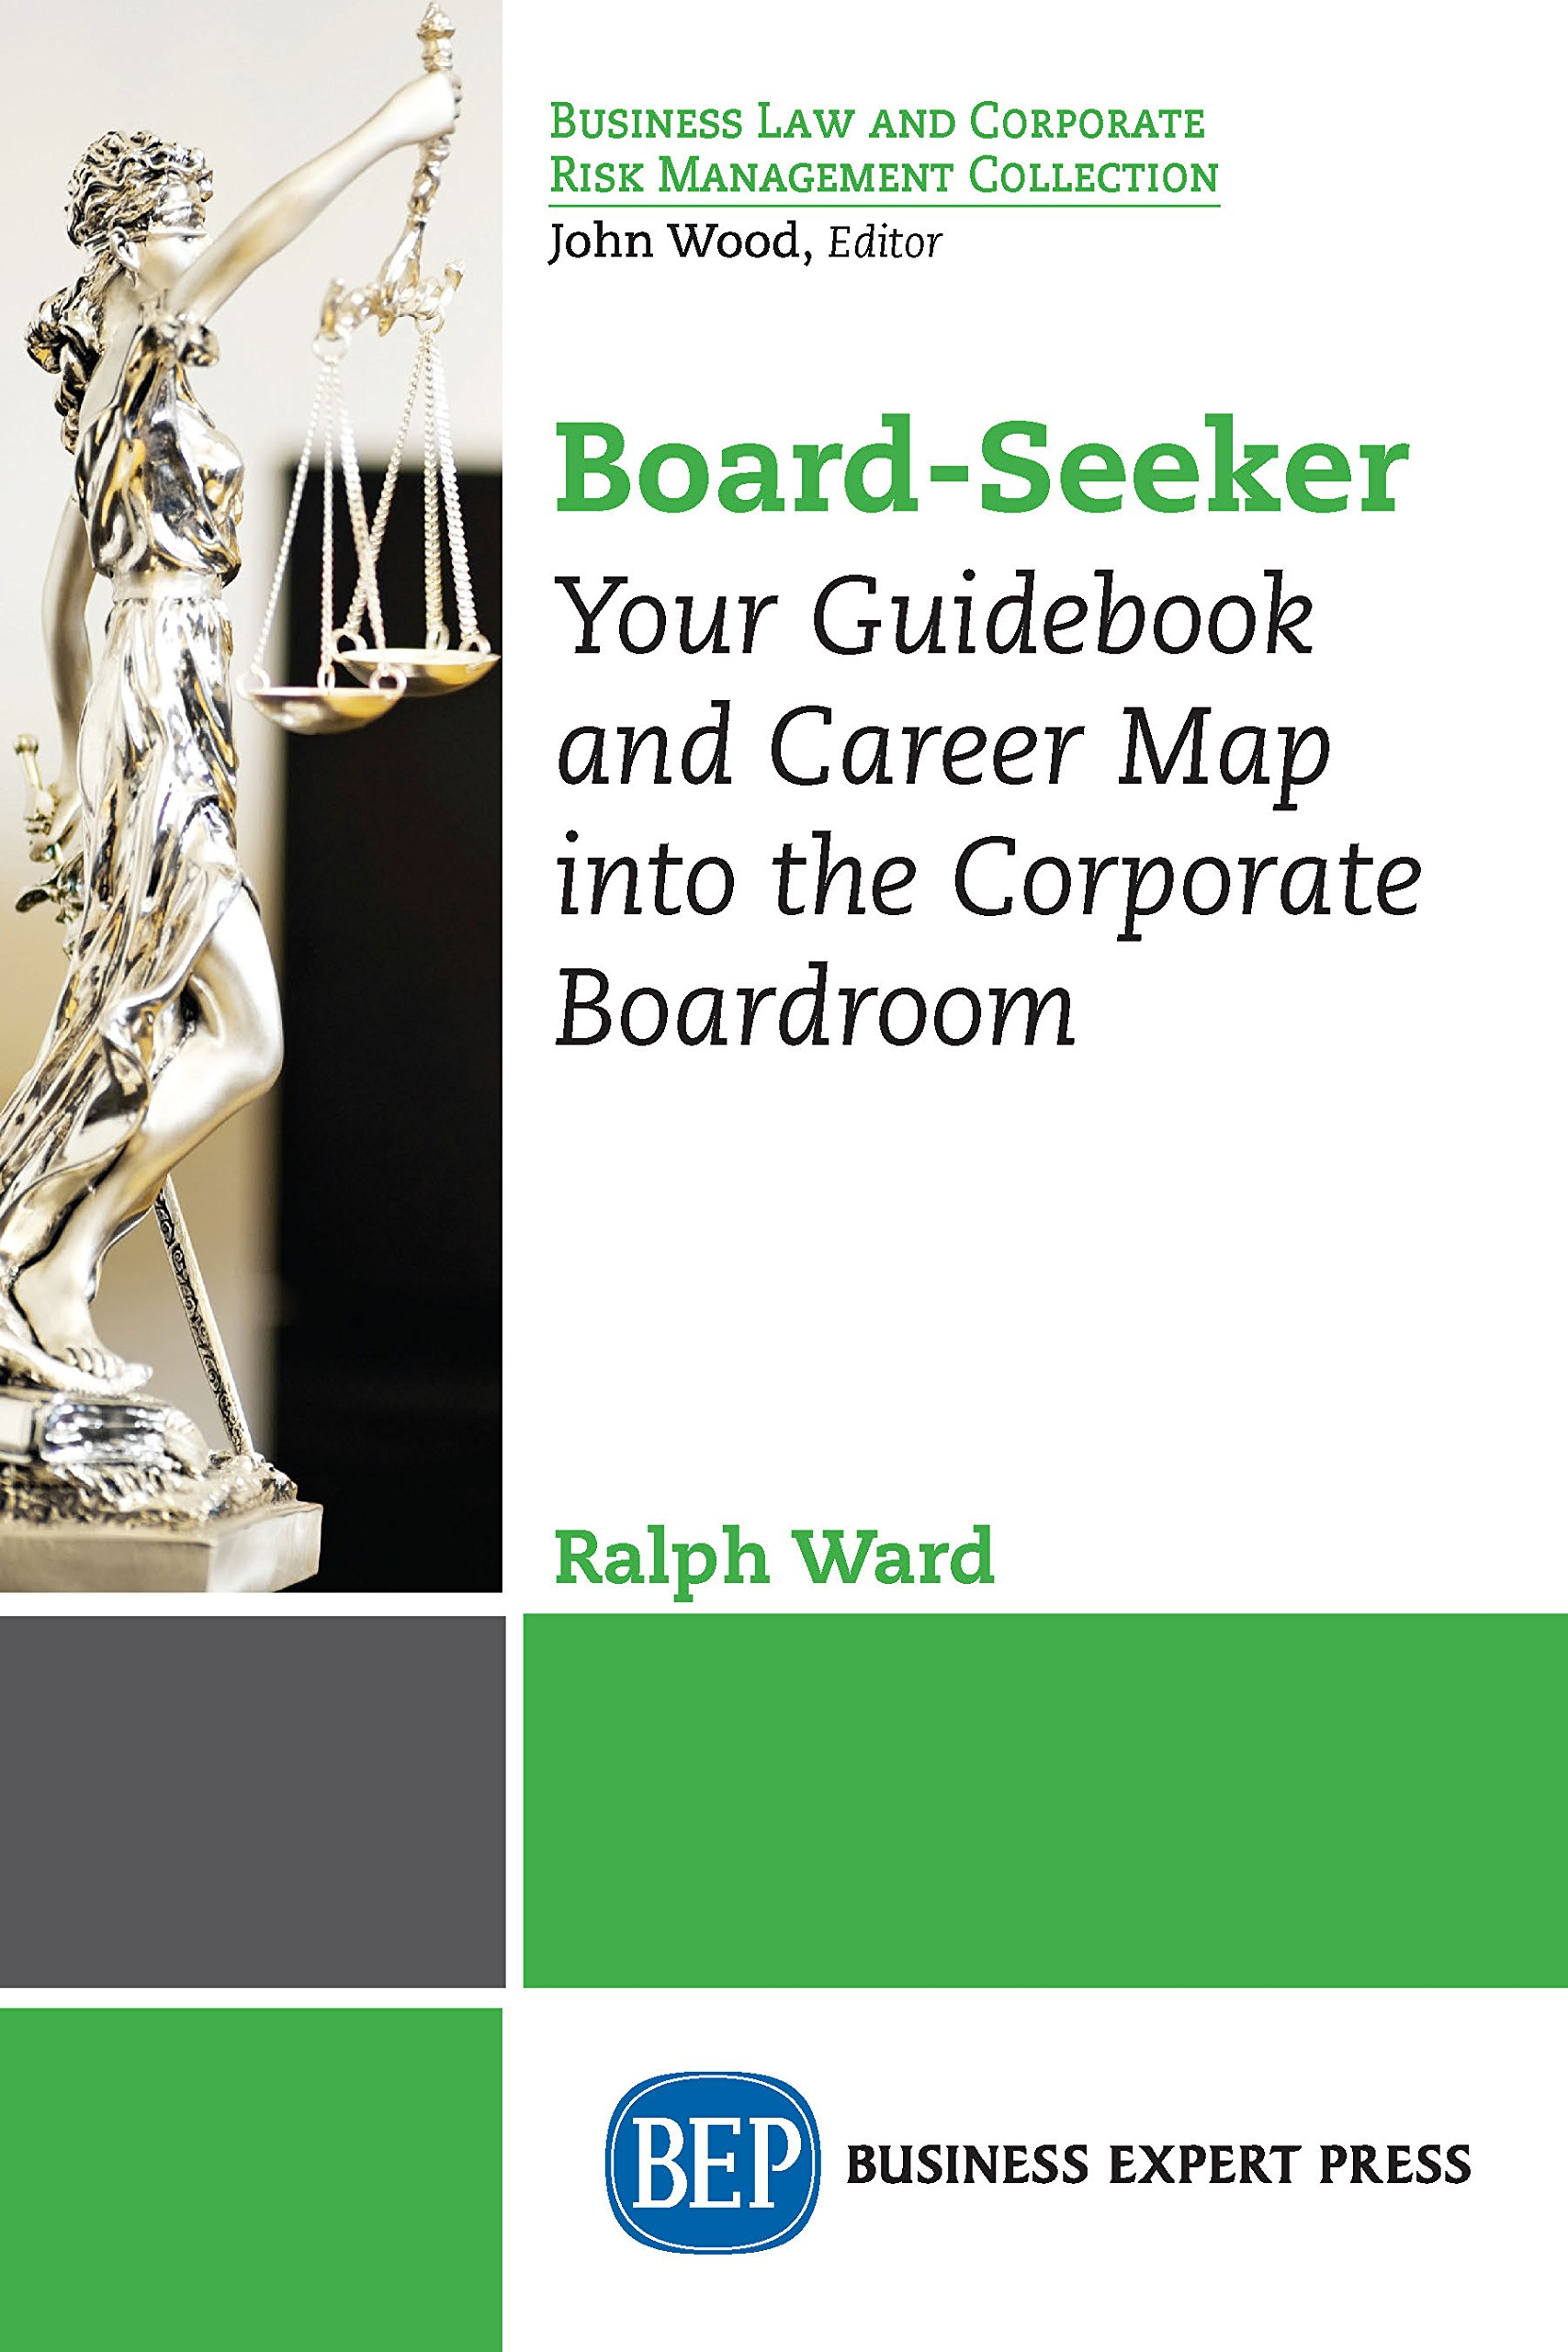 Board-Seeker: Your Guidebook and Career Map into the Corporate Boardroom